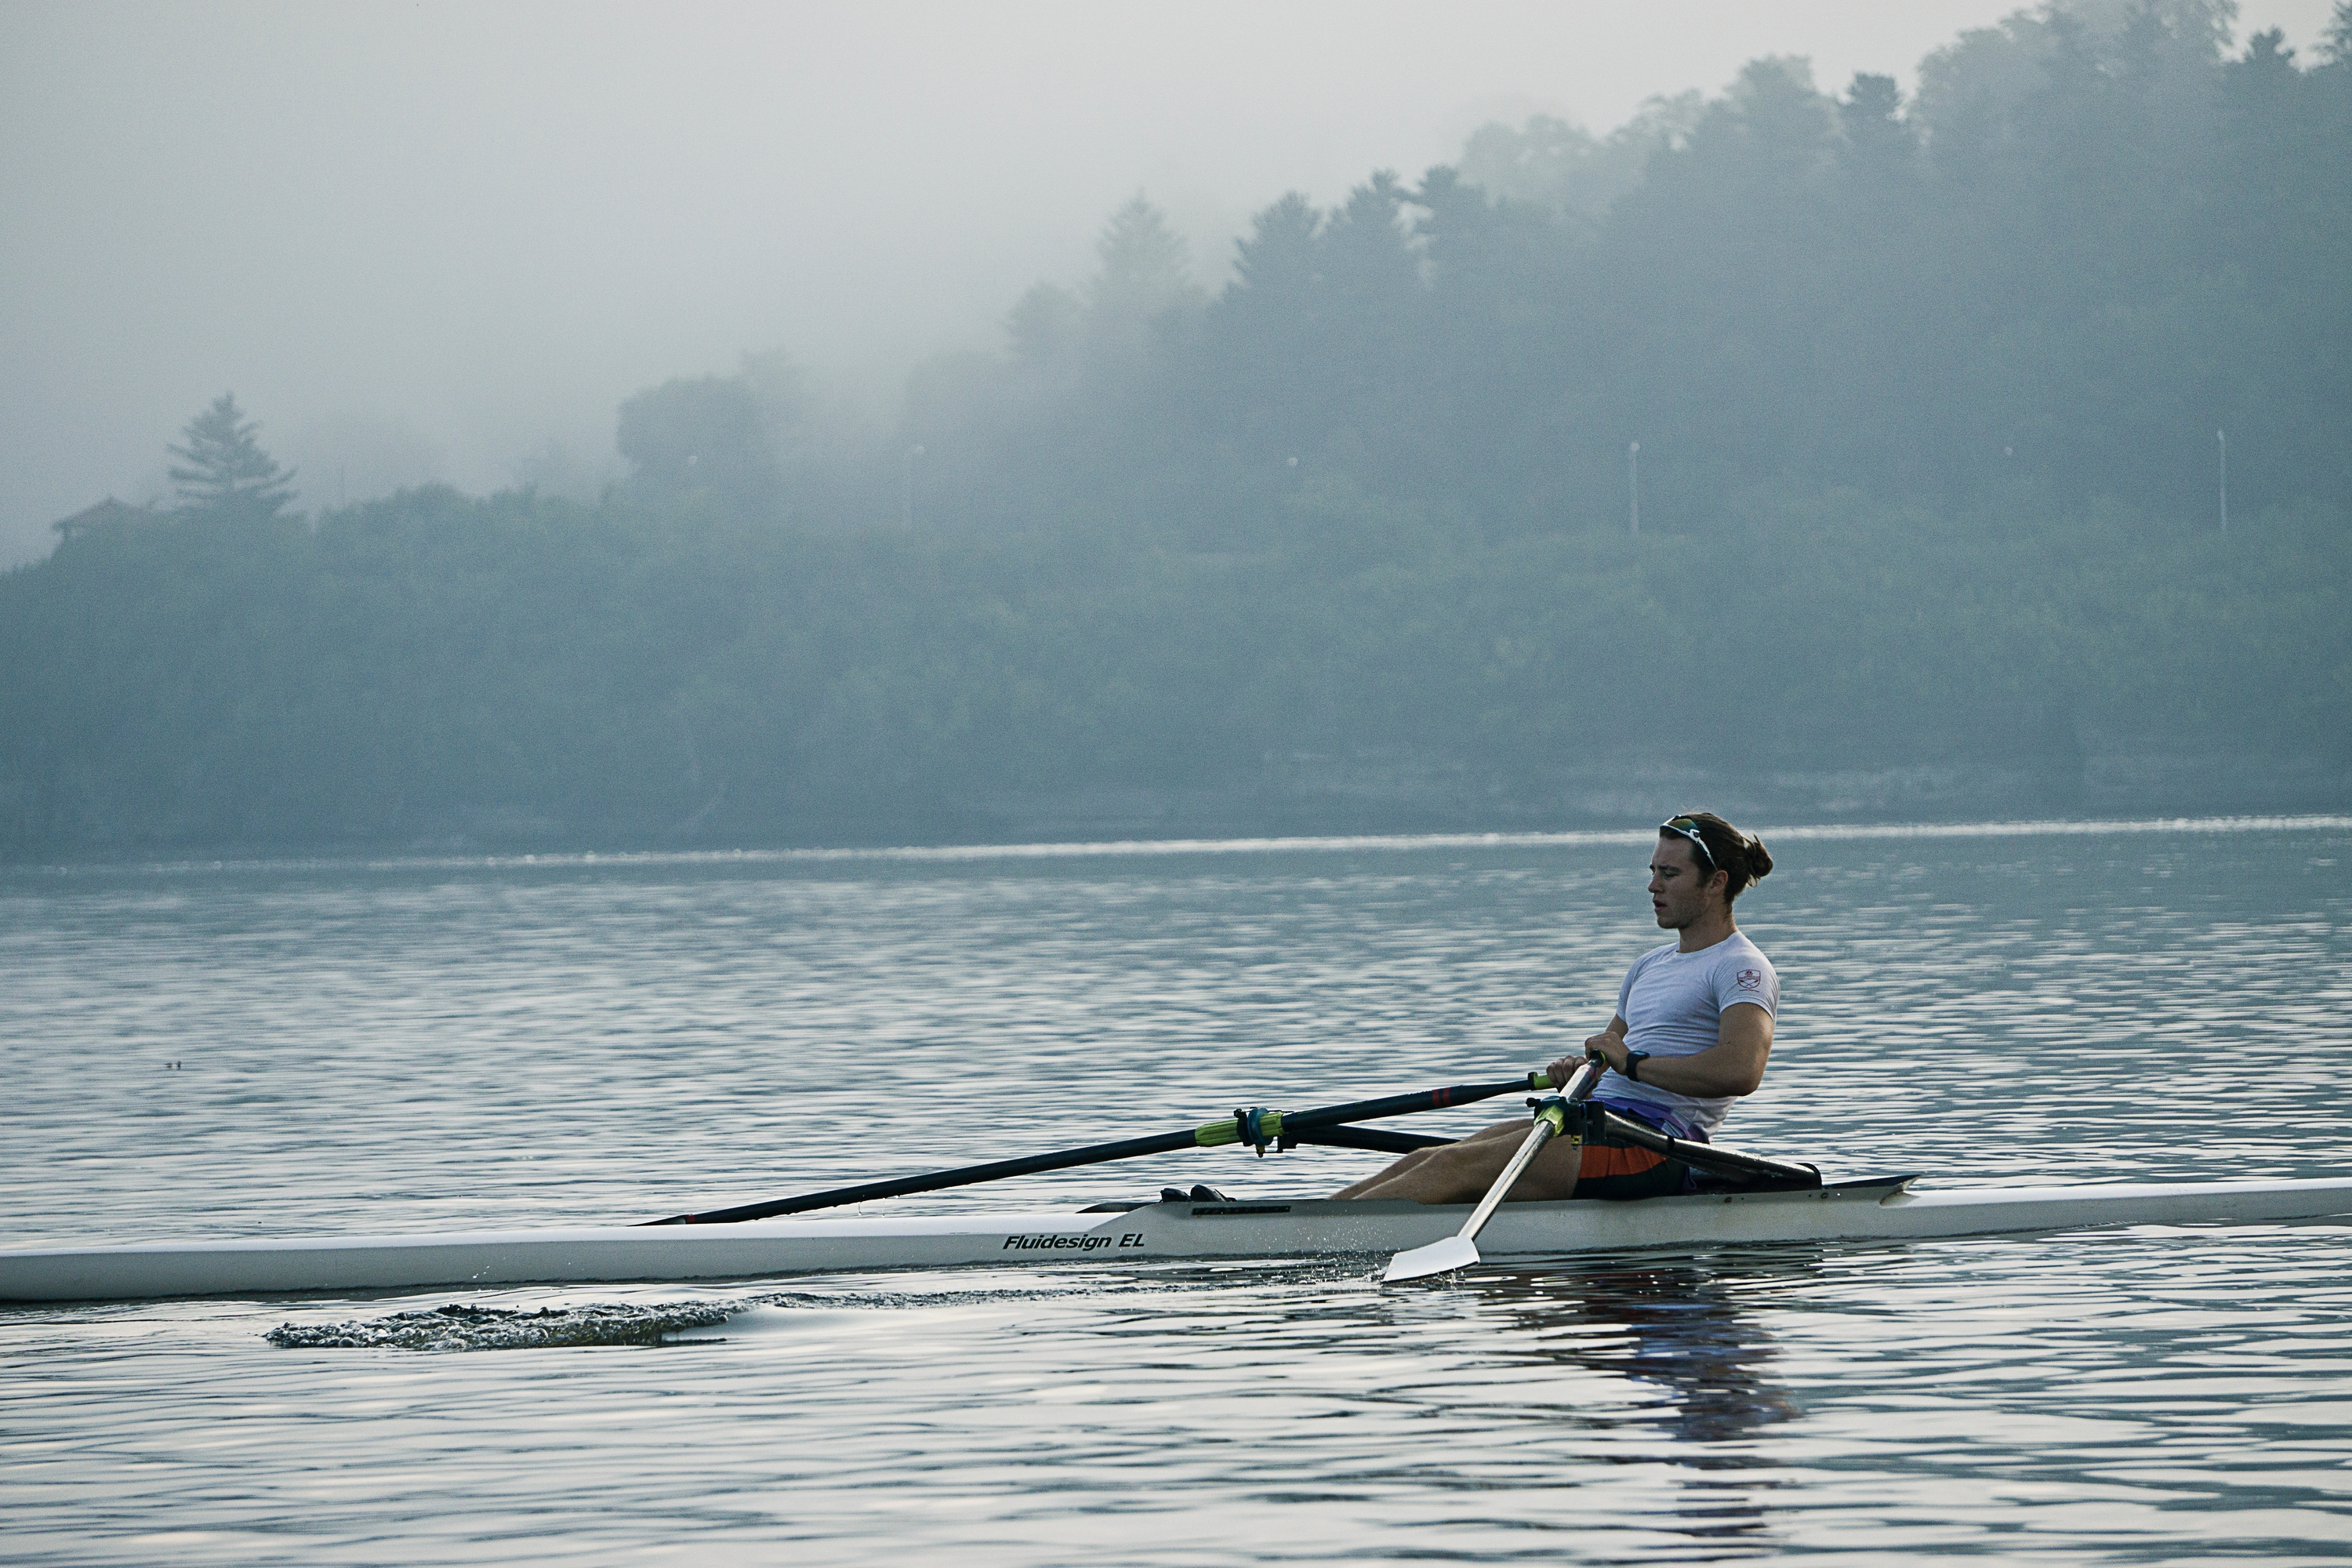 rowing is a great way to cross-train this summer